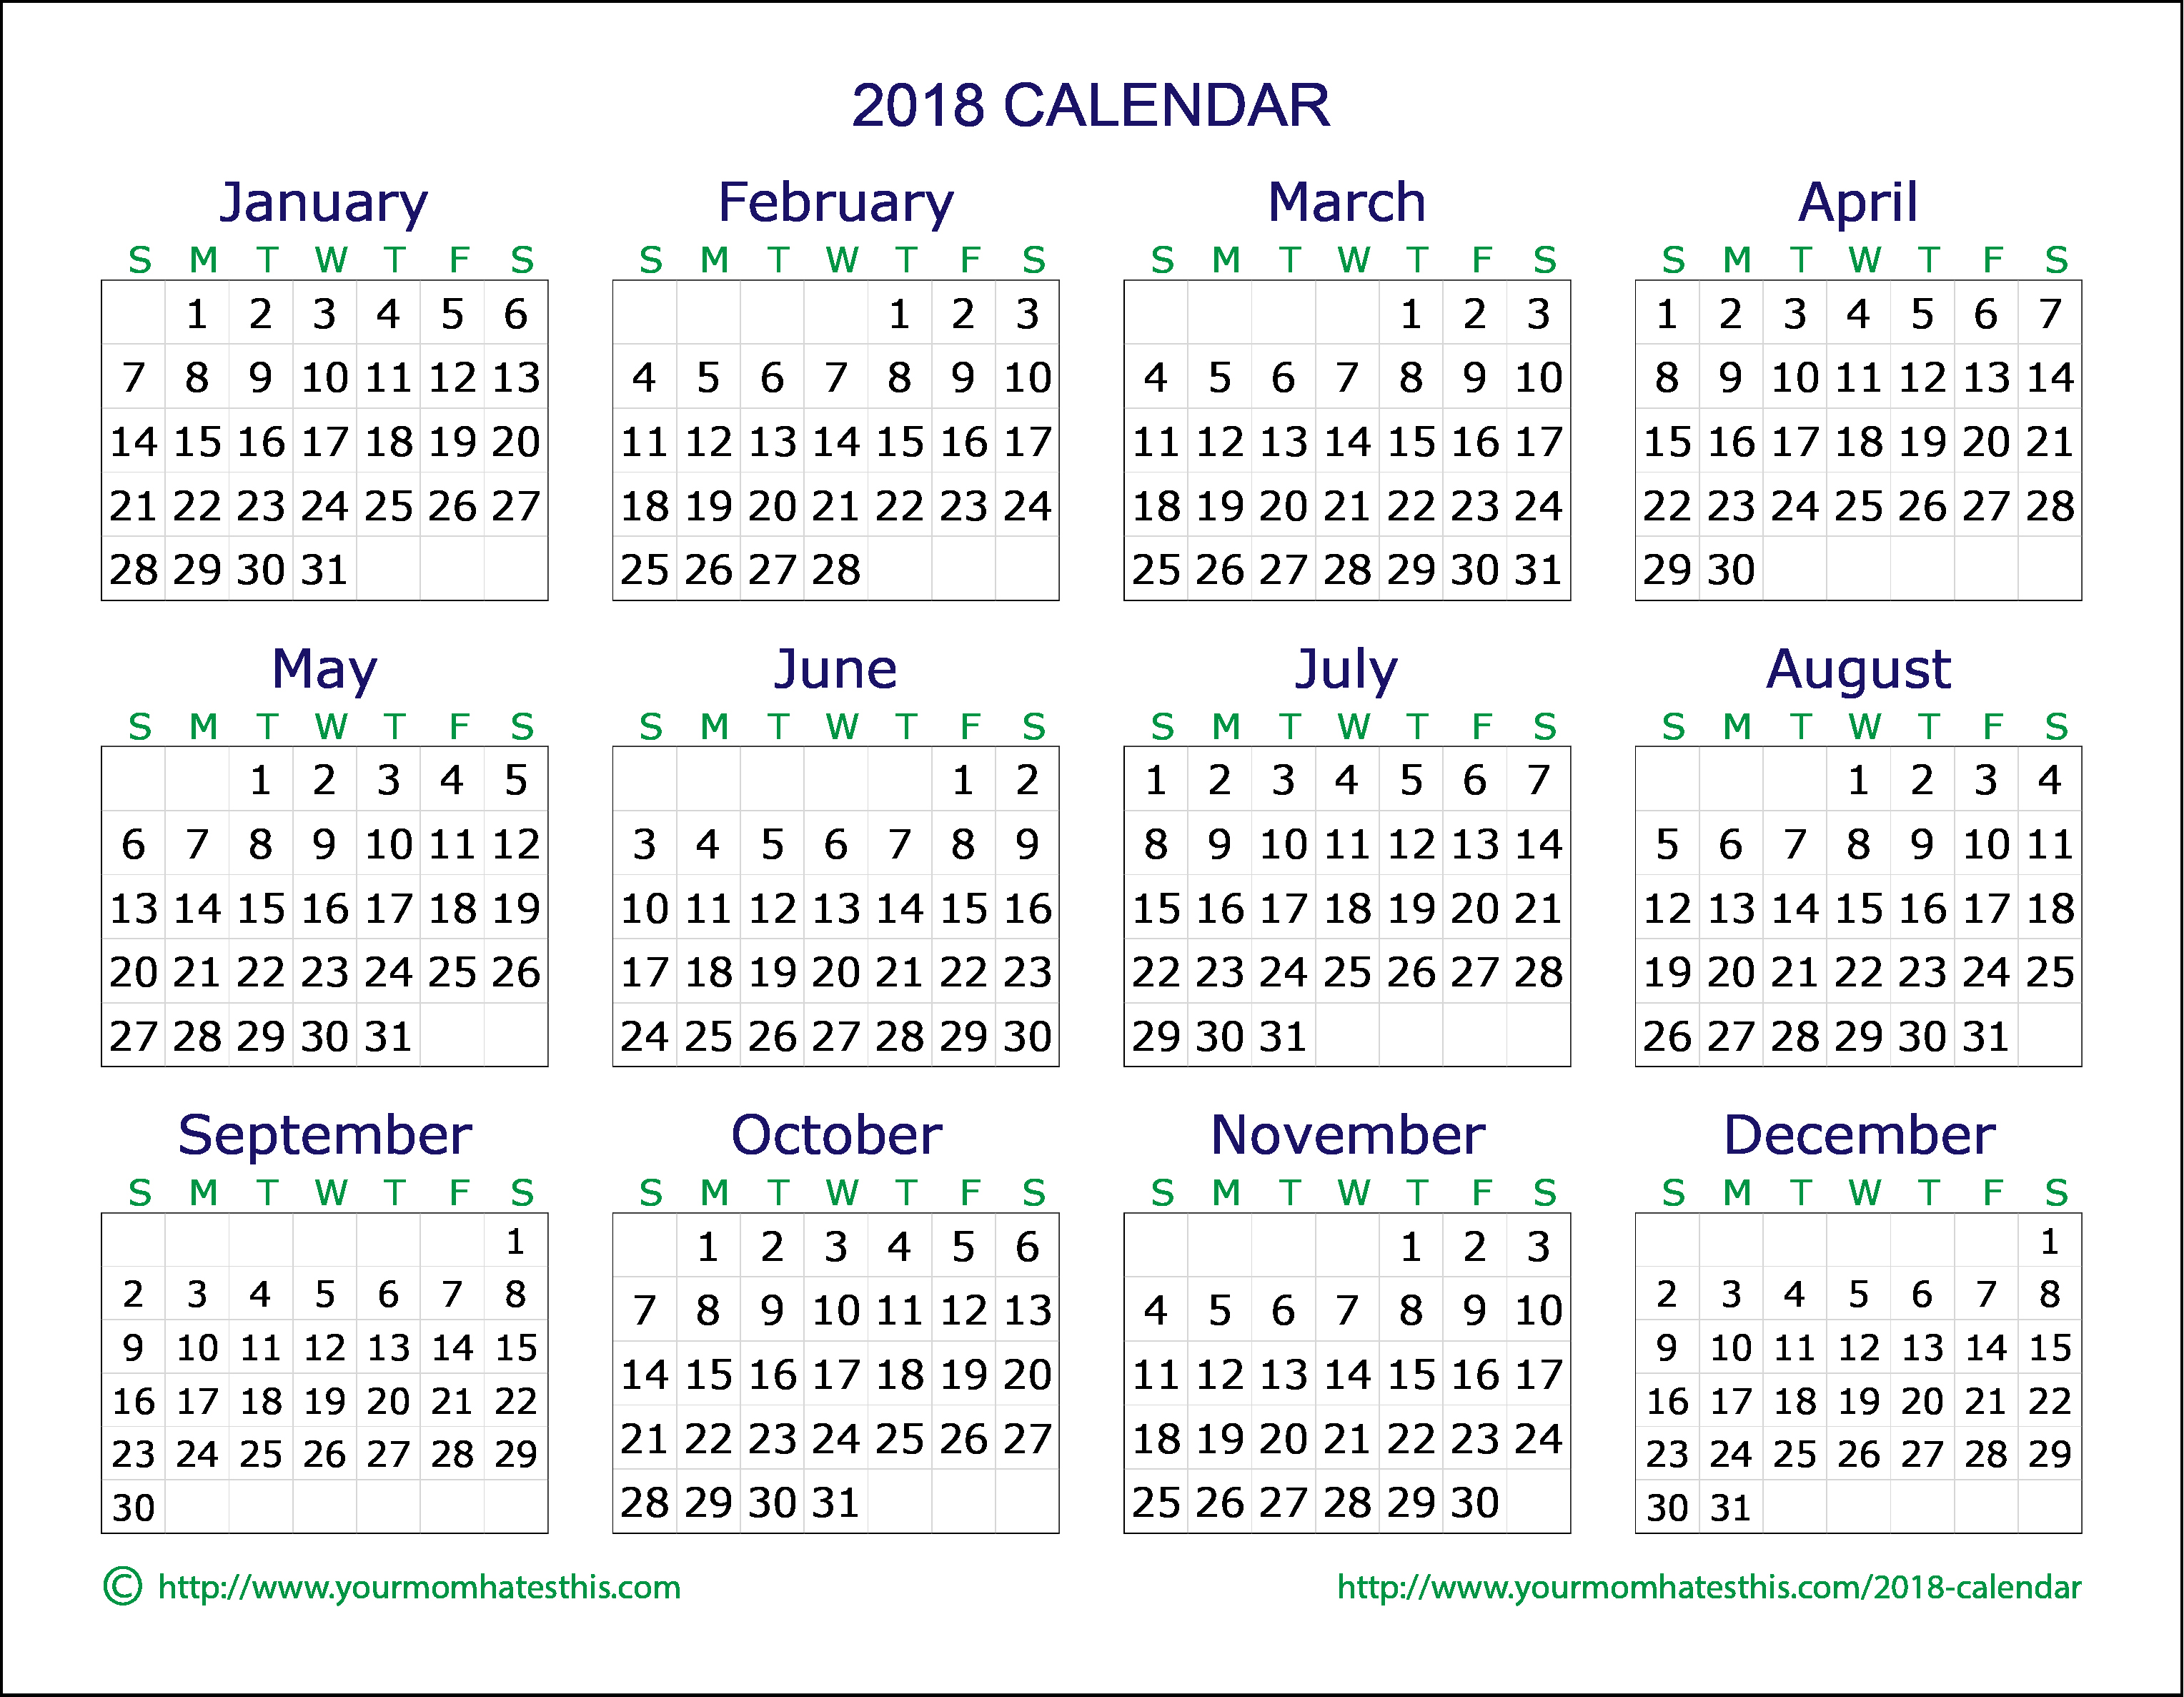 Calendar 2018 Printable with Holidays Luxury 2018 Calendar – Download Quality Calendars